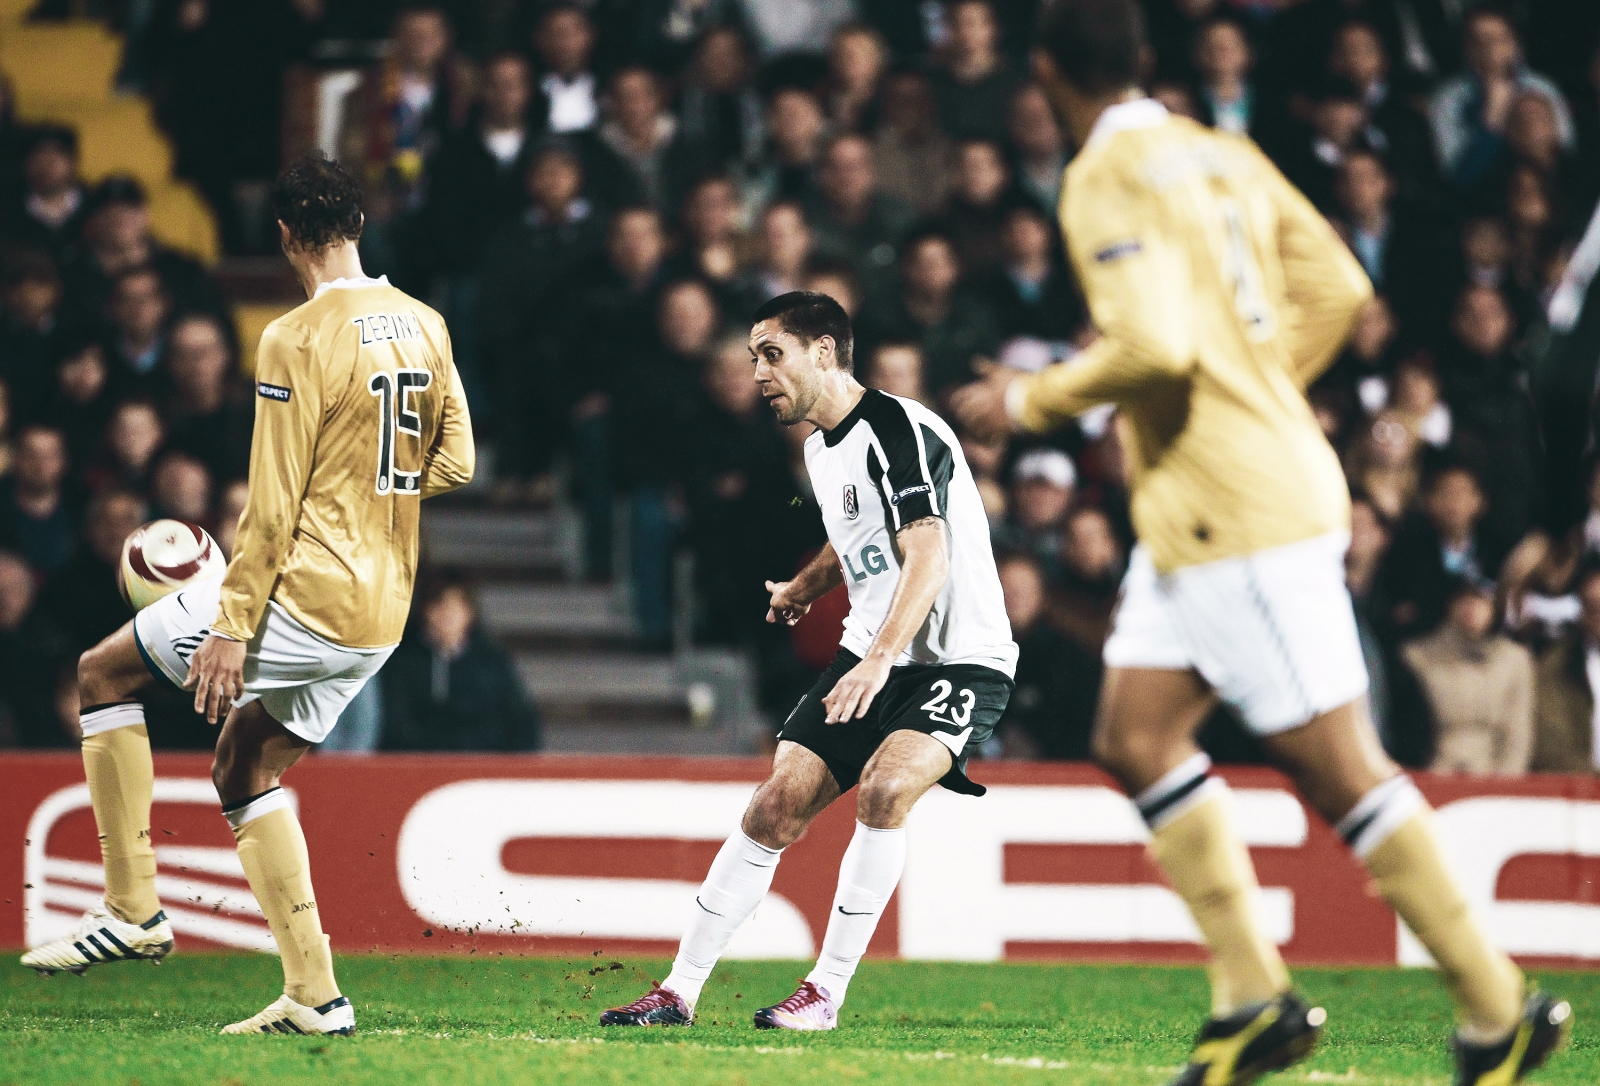 e6cd5cf139e The night Fulham stunned Juventus  how Craven Cottage gave rise to a  legendary European comeback